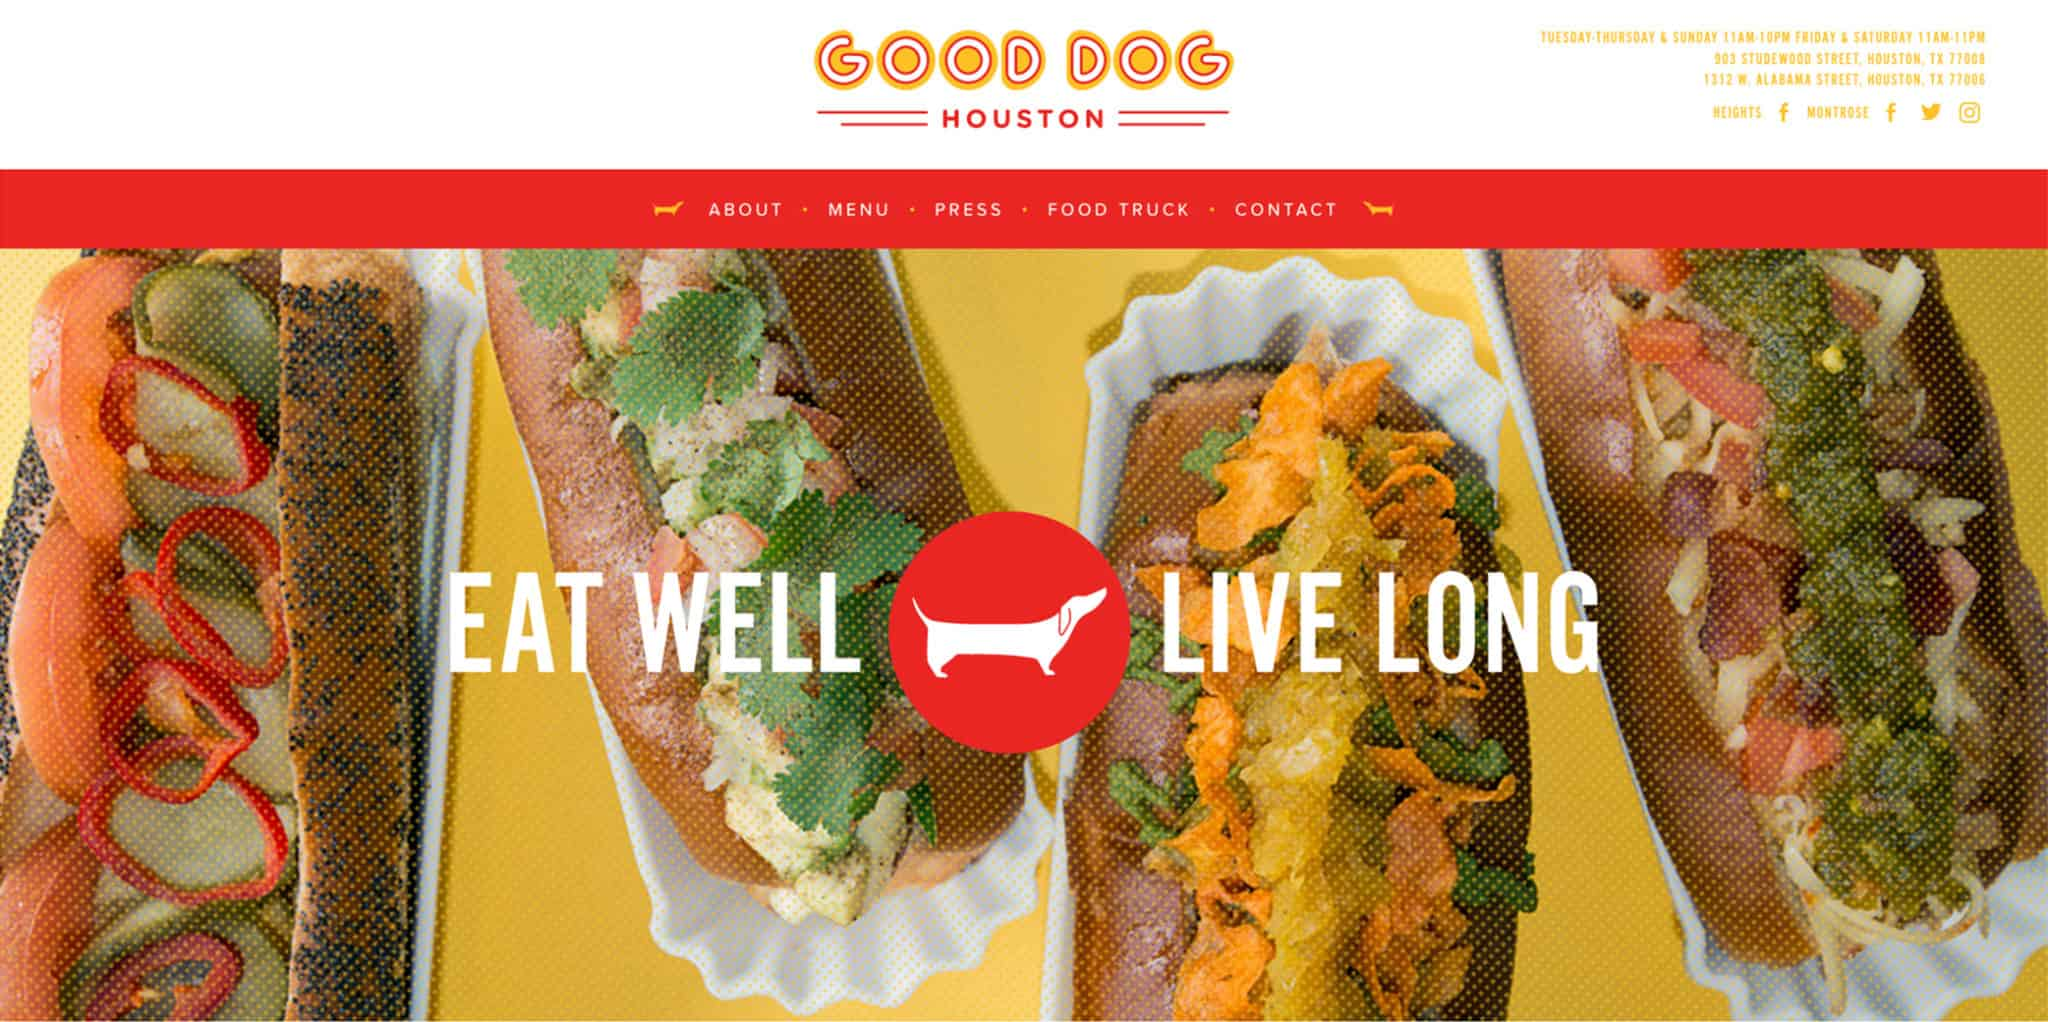 Homepage, Wordpress website design and development for Good Dog Houston | Designed by Field of Study: A branding and graphic design consultancy | Houston TX | Jennifer Blanco & John Earles